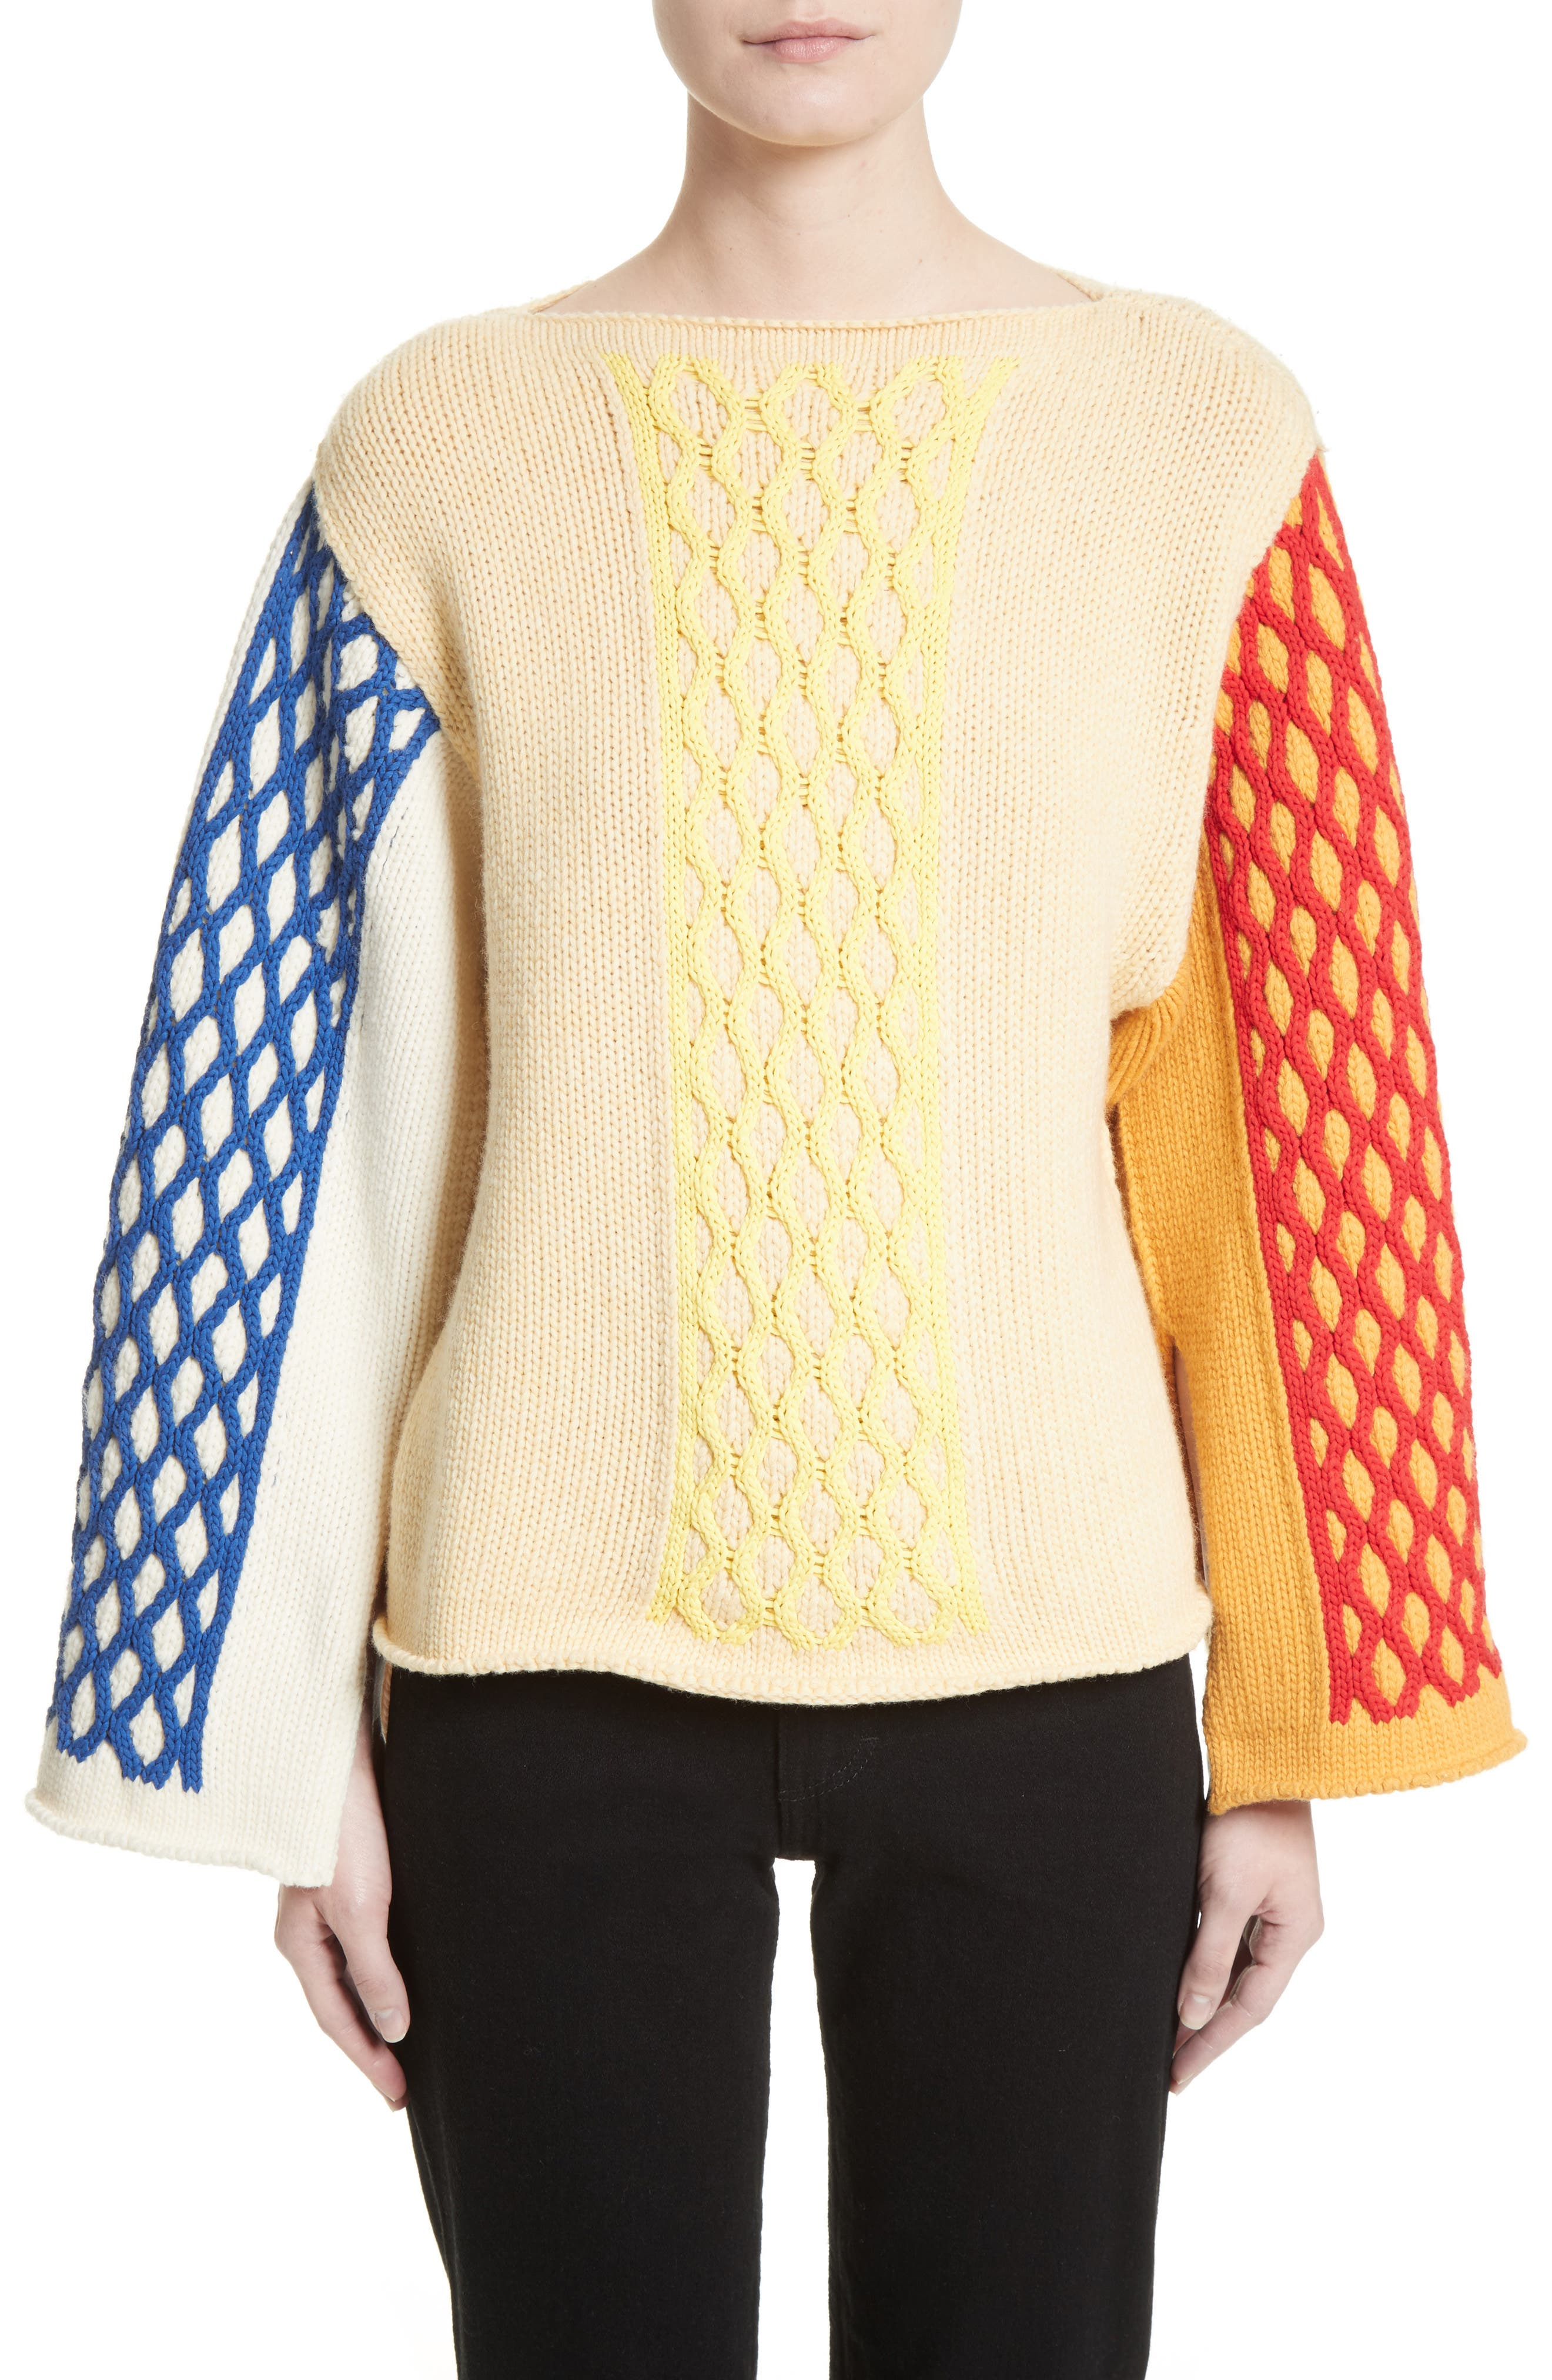 J.W.ANDERSON Multicolor Cable Knit Sweater